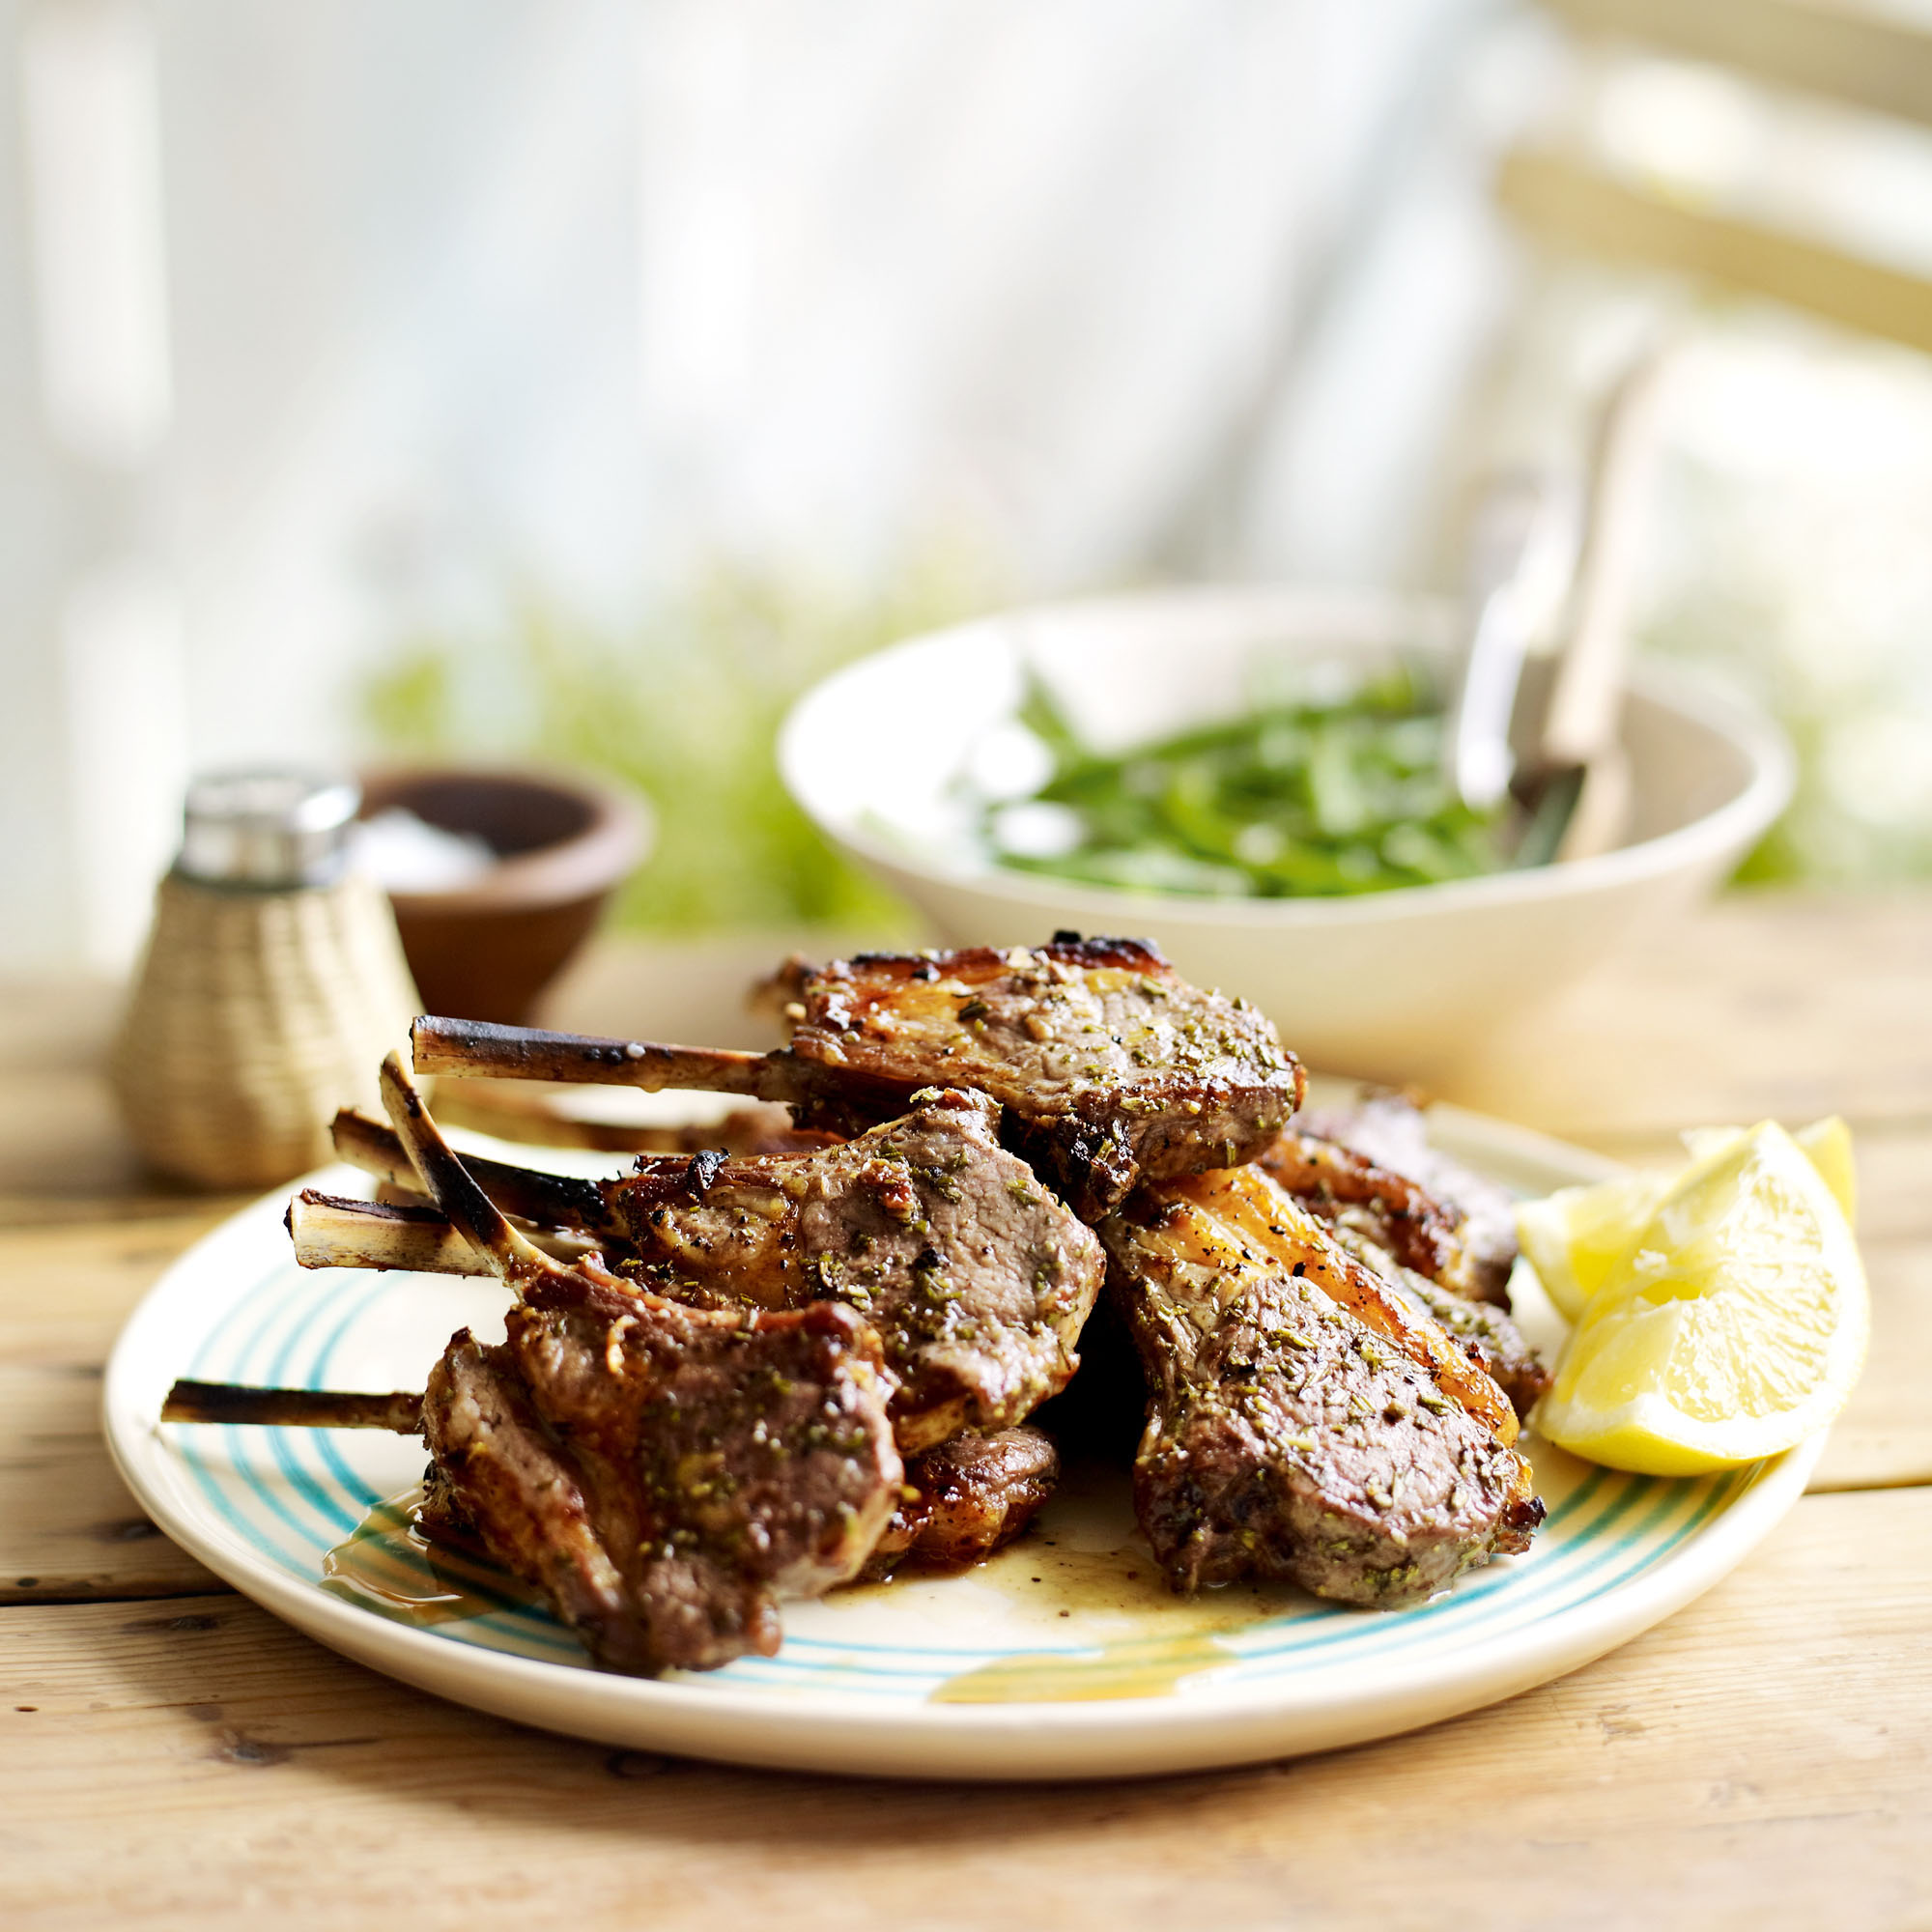 Rosemary and garlic lamb chops with lemony green beans recipe